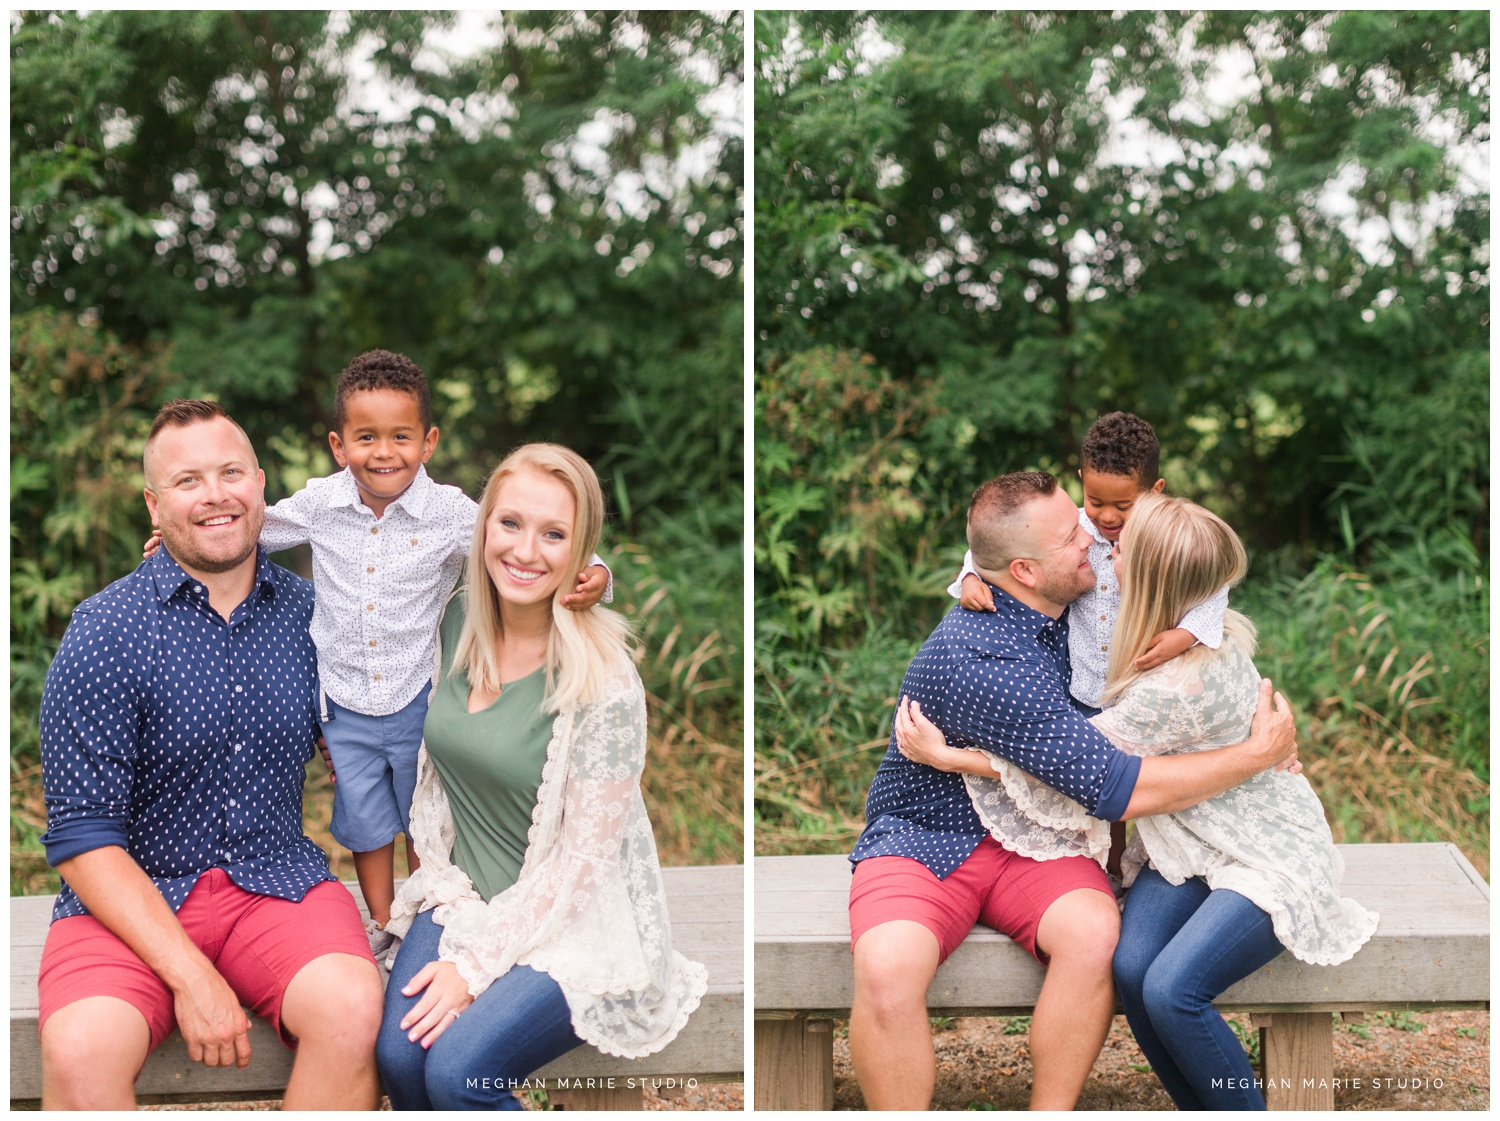 meghan marie studio ohio dayton troy photographer wedding photography engagement alex kaila family honeycreek preserve champagne downtown courthouse urban rural earth toned nature woods barn country city stone fountain elegant_0464.jpg